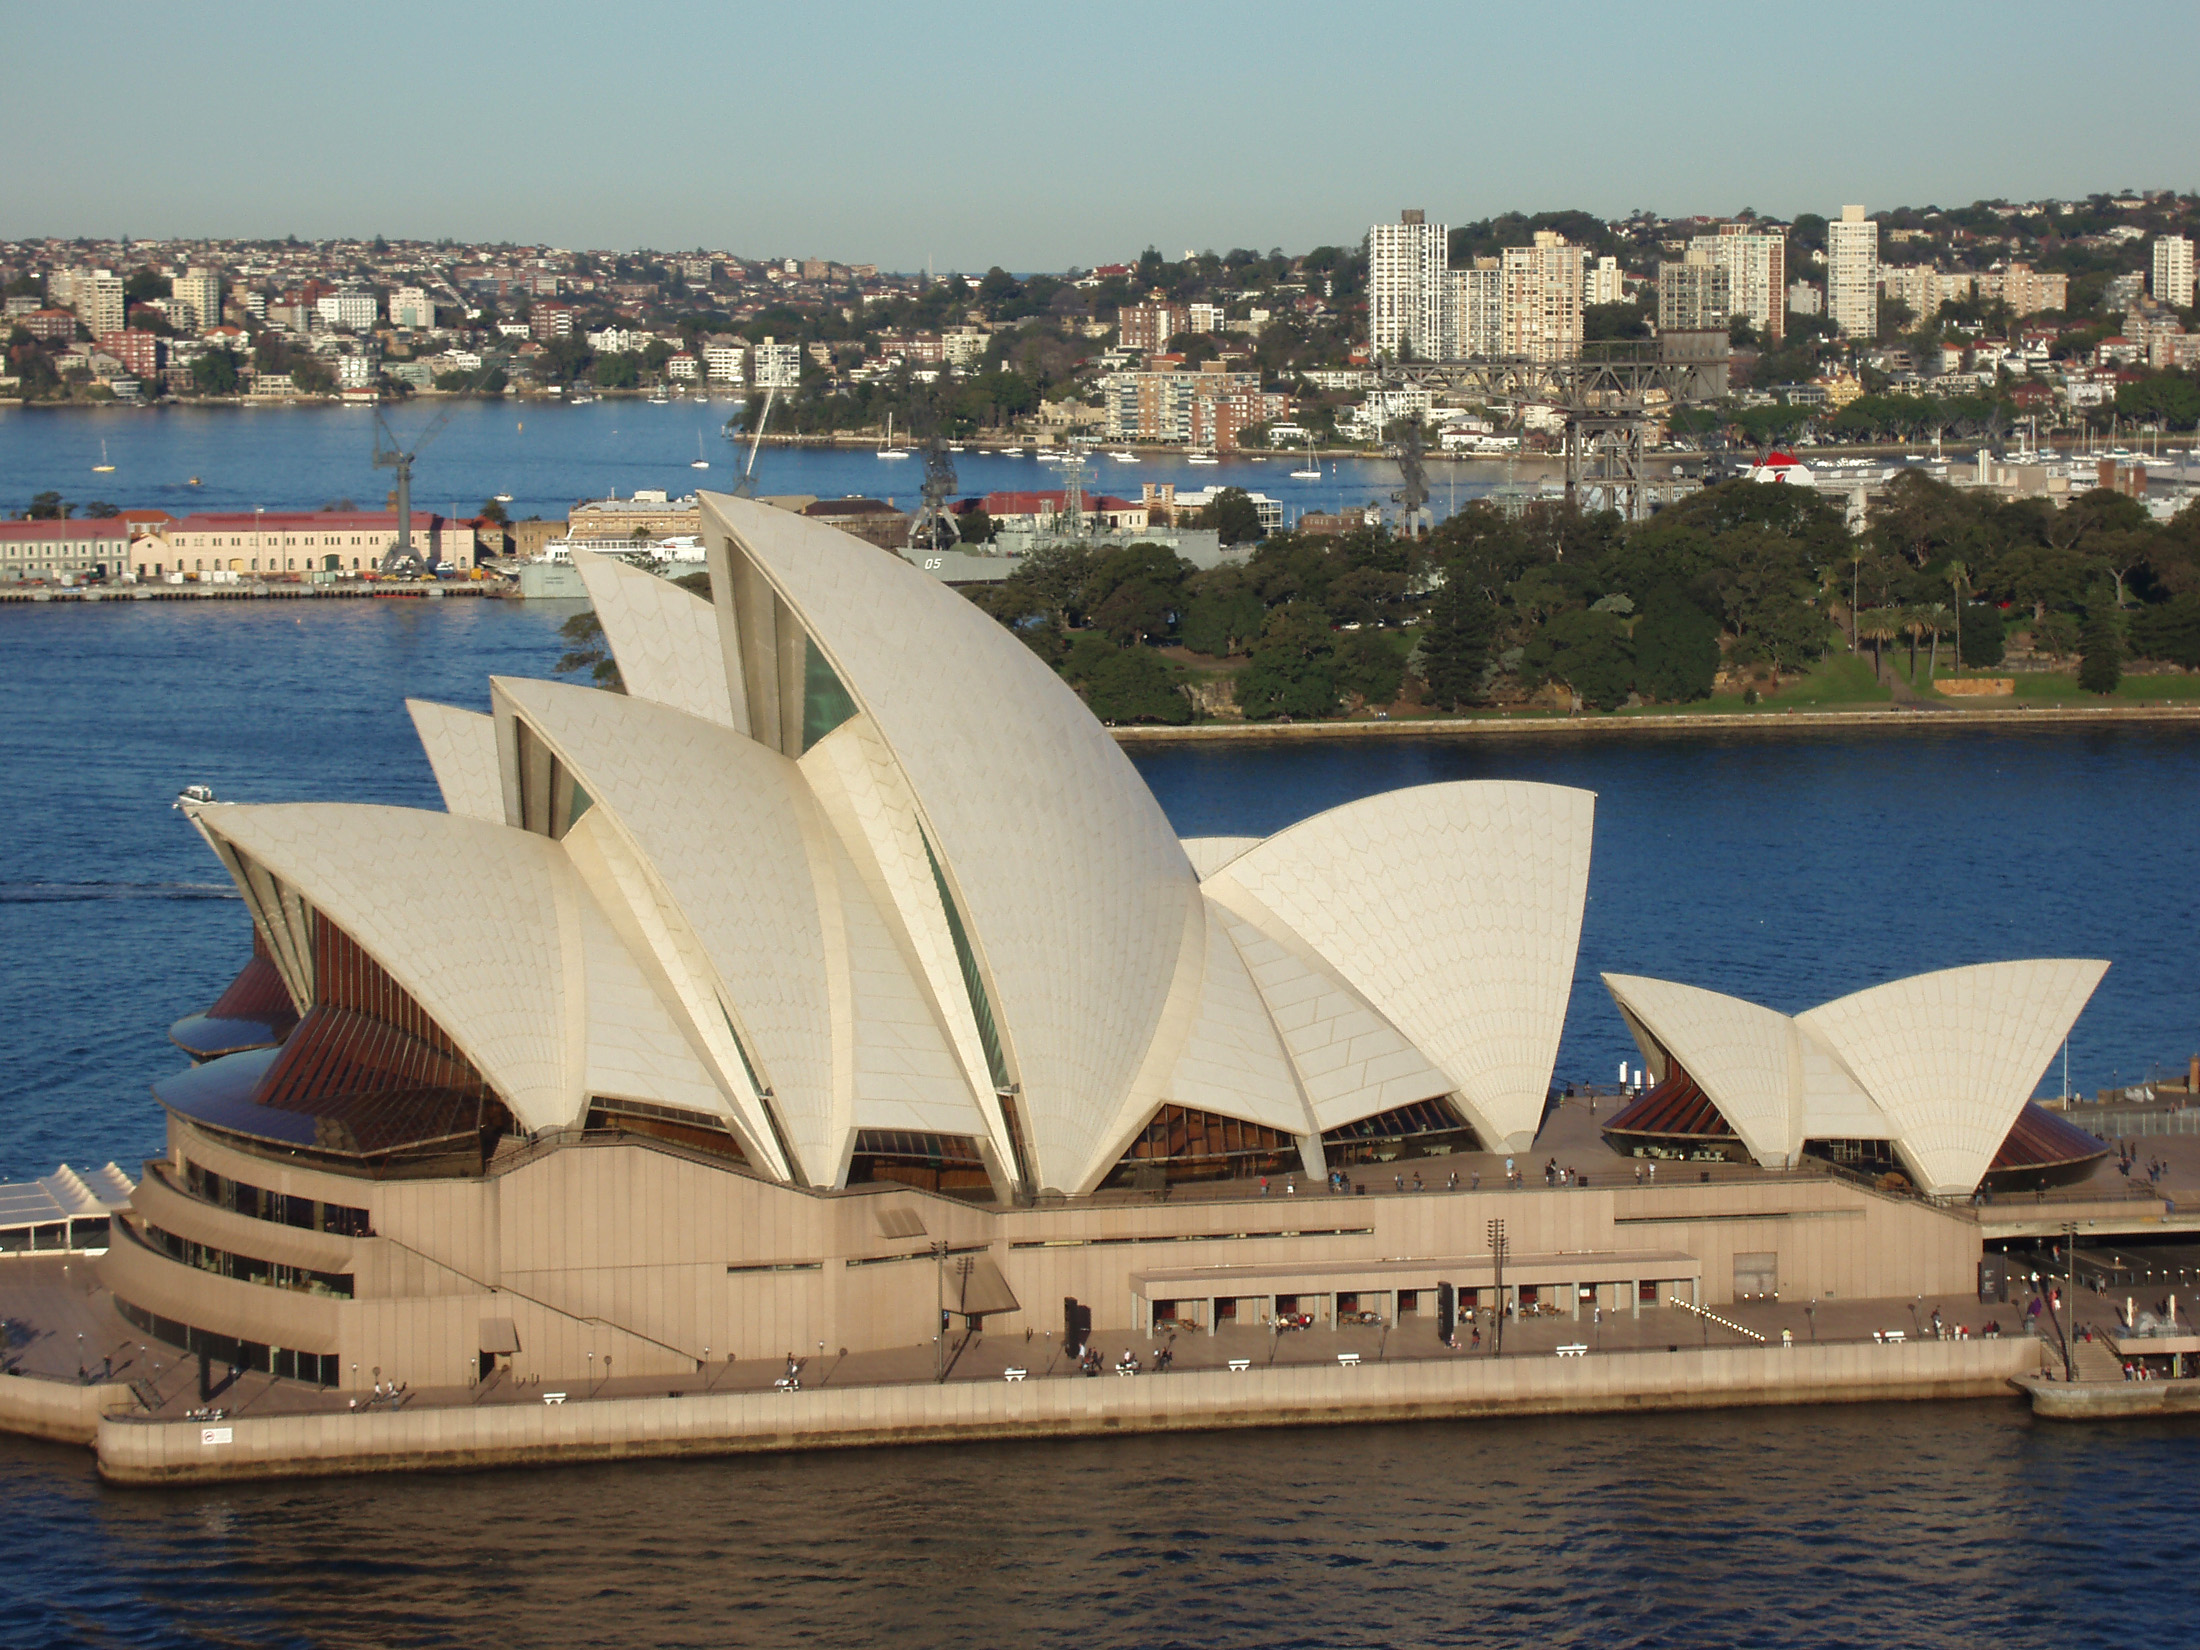 High angle view of the iconic Sydney Opera House, Sydney, Australia, with its shell-like curving roof on the harbor coastline with the city visible behind